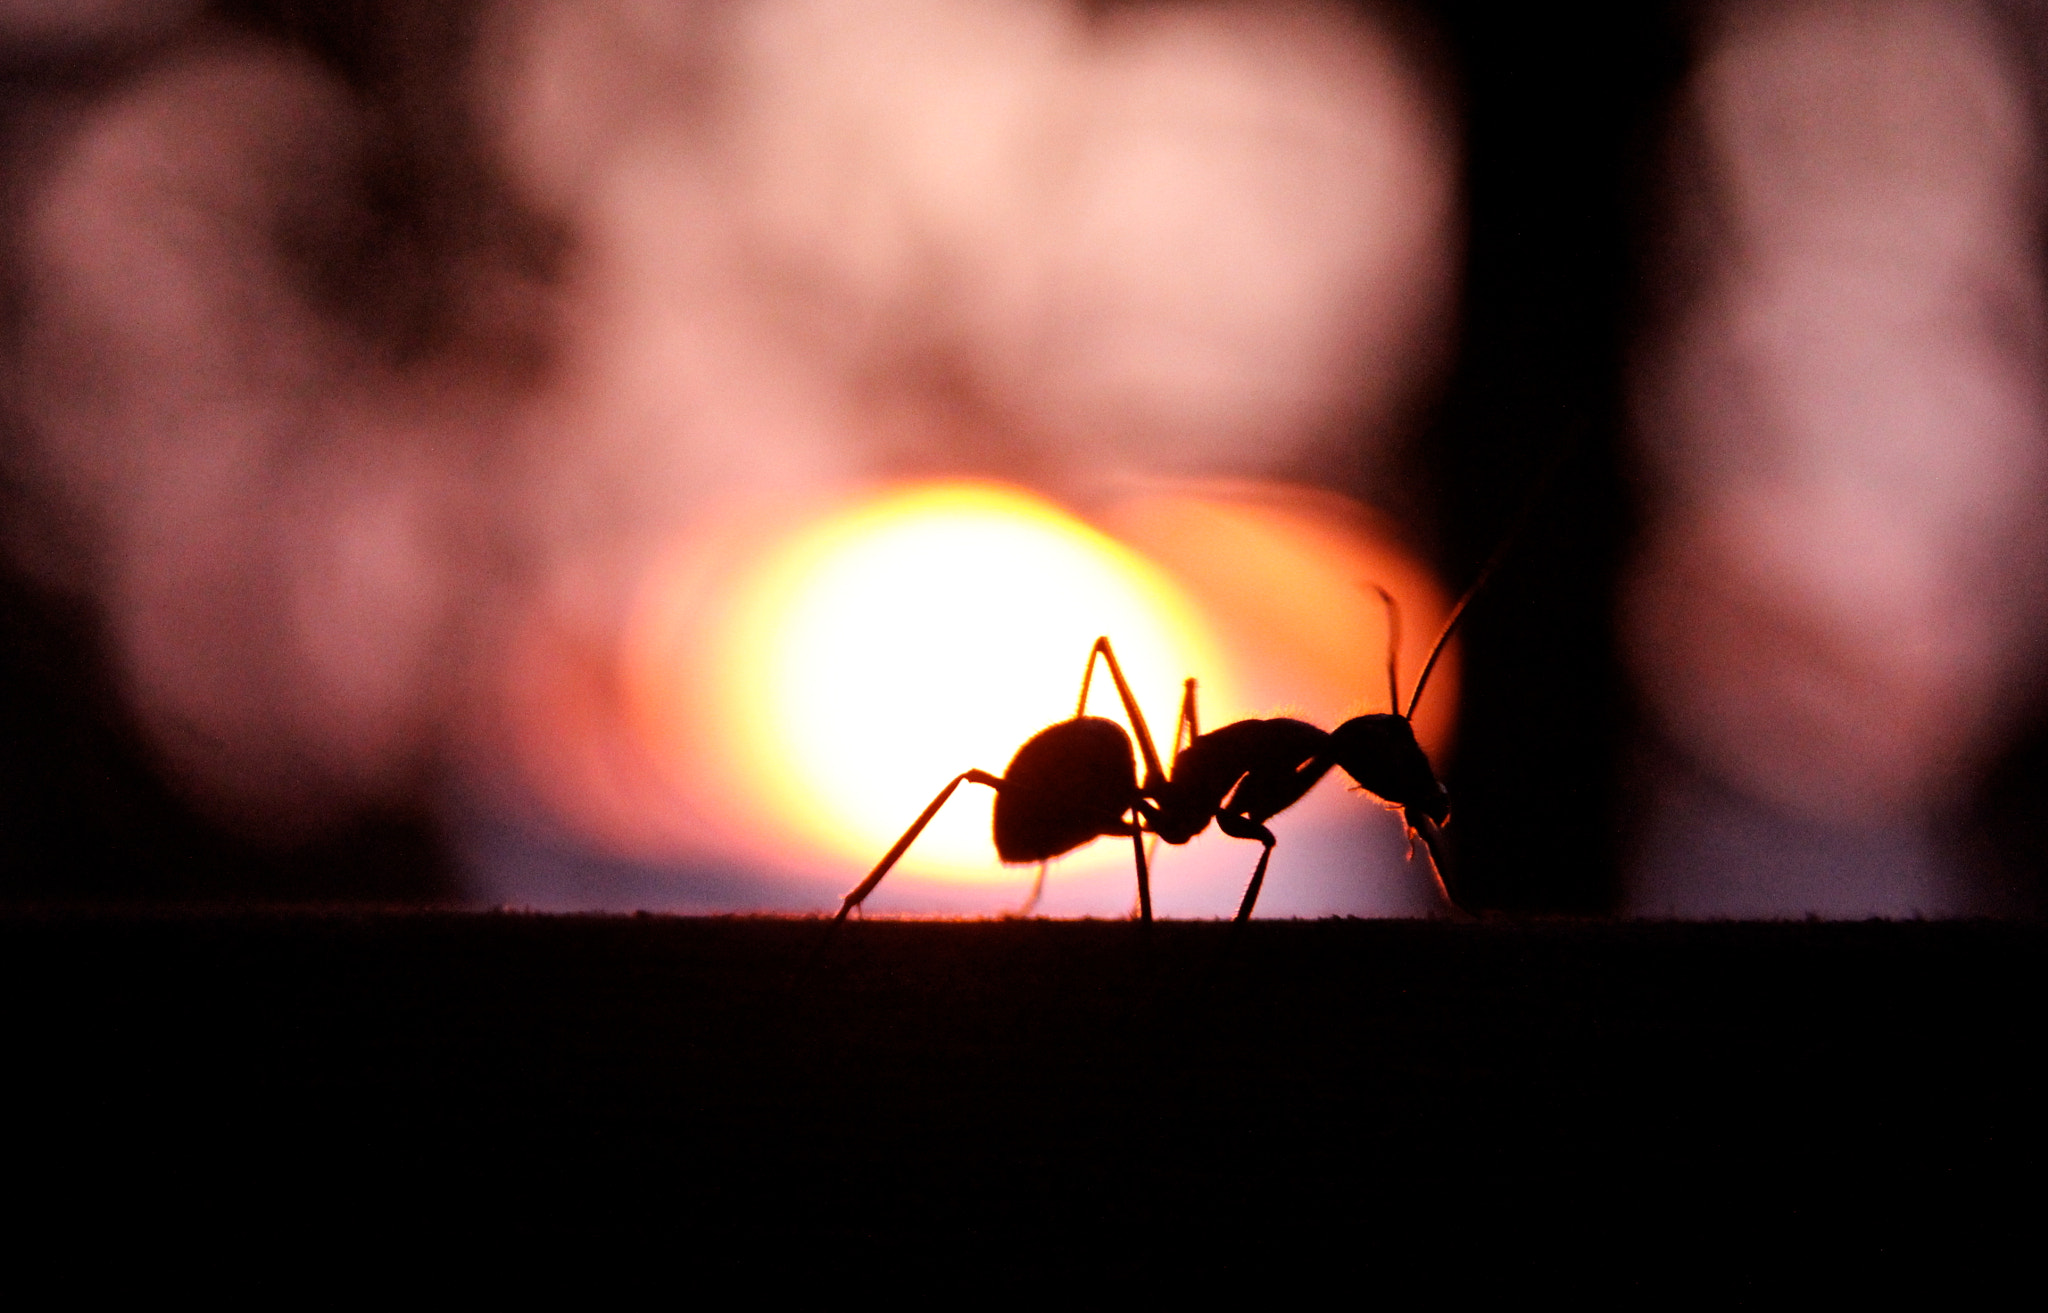 Photograph giant ant by Paolo Gatti on 500px